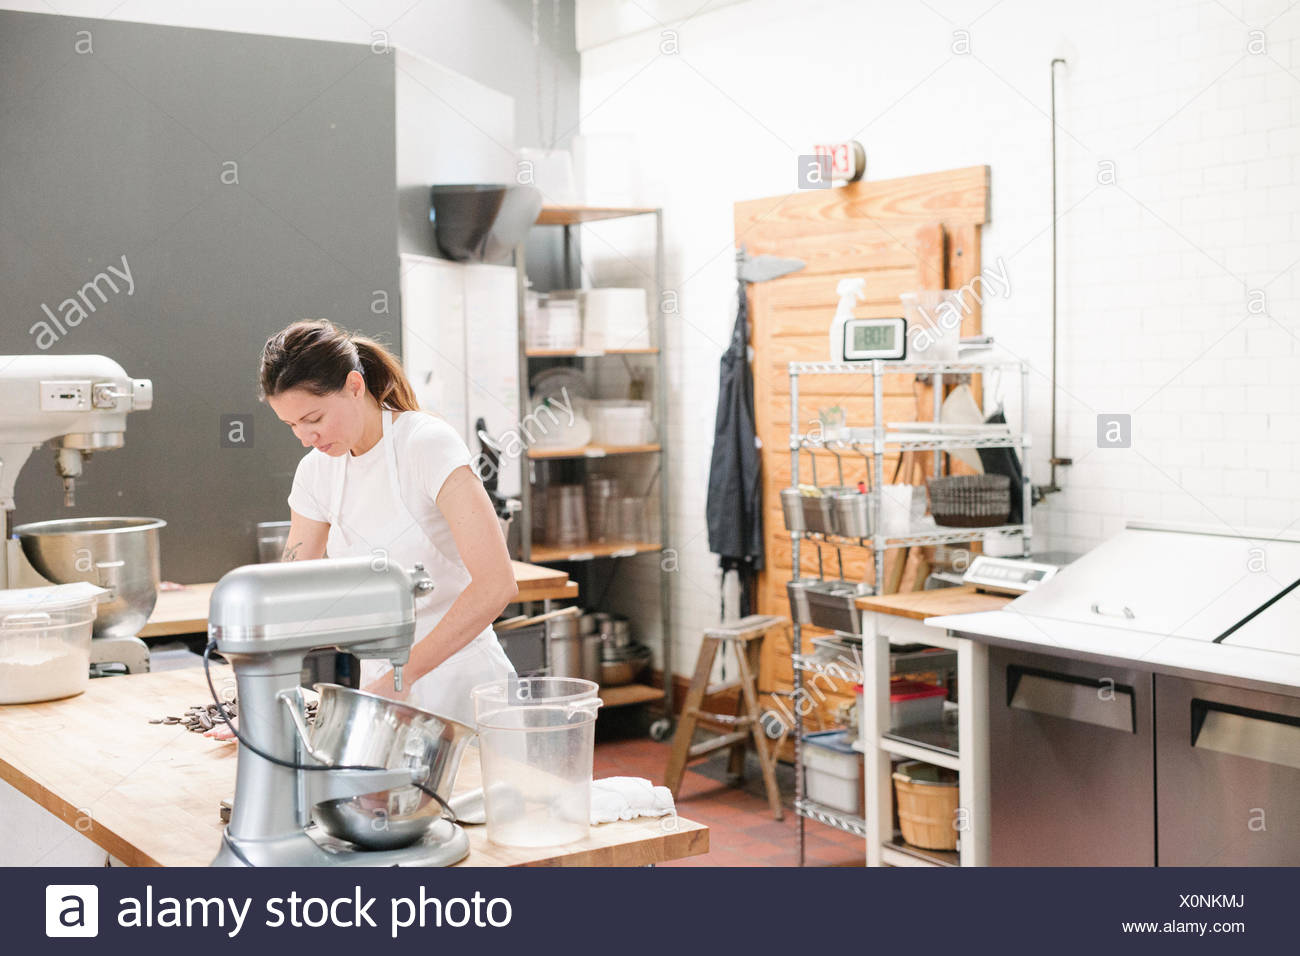 Woman wearing a white apron at a work counter in a bakery. - Stock Image